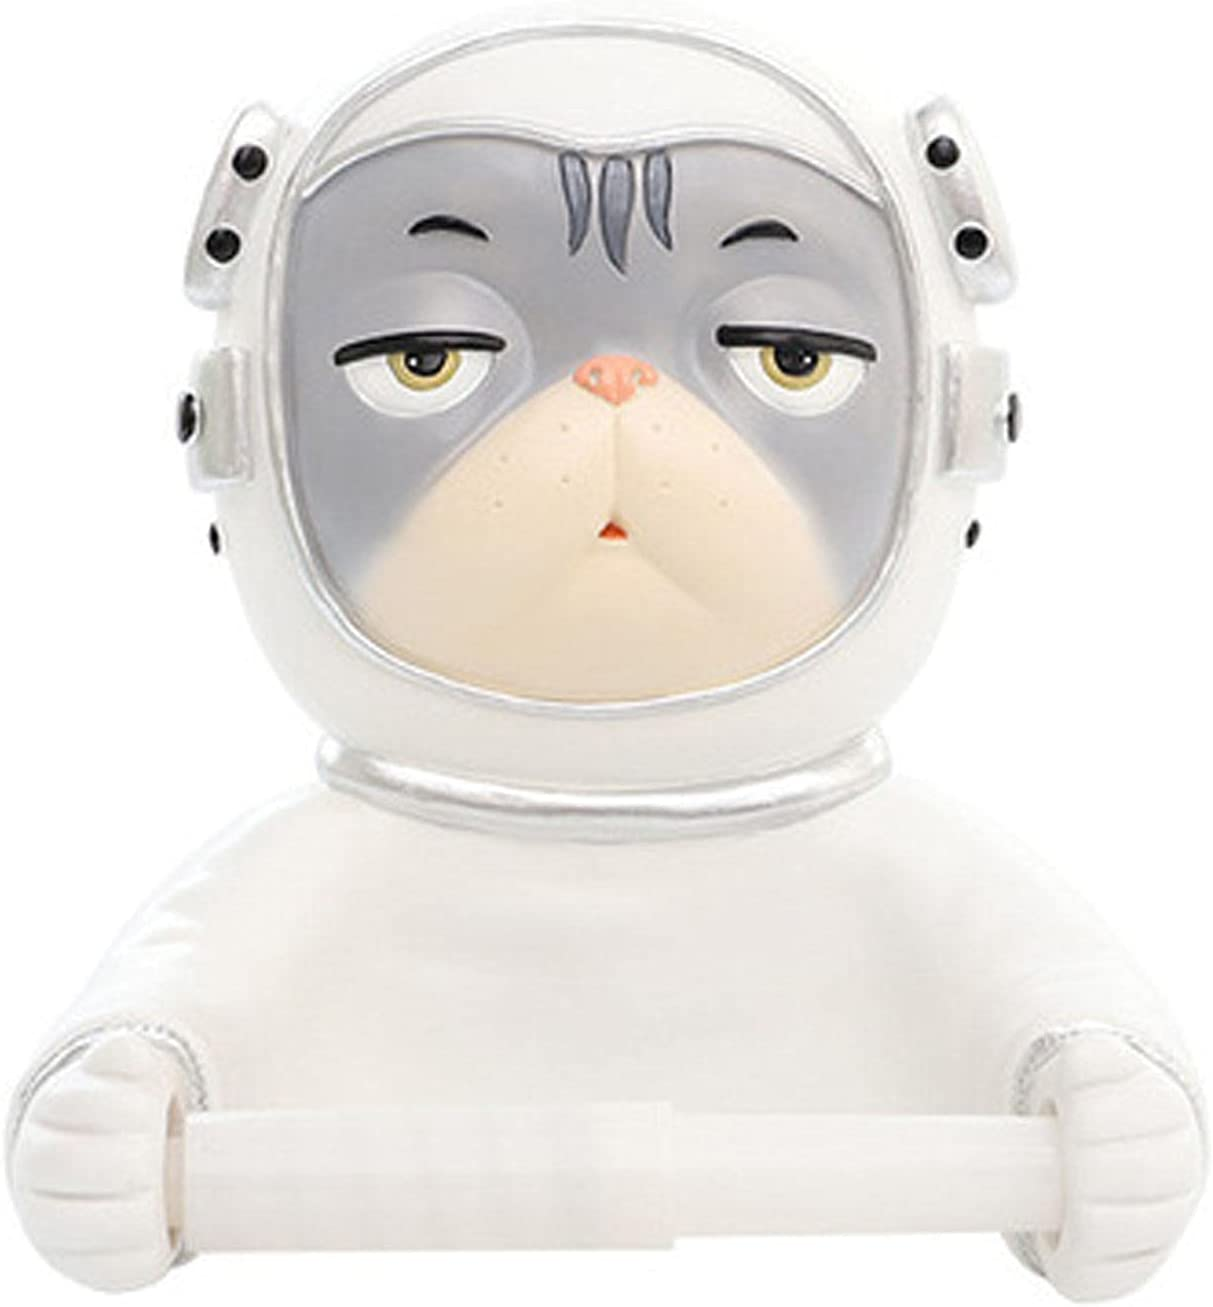 Cheng-store Newest Astronaut Cat Toilet 67% OFF of fixed price Roll Paper NEW Punch-Fre Box